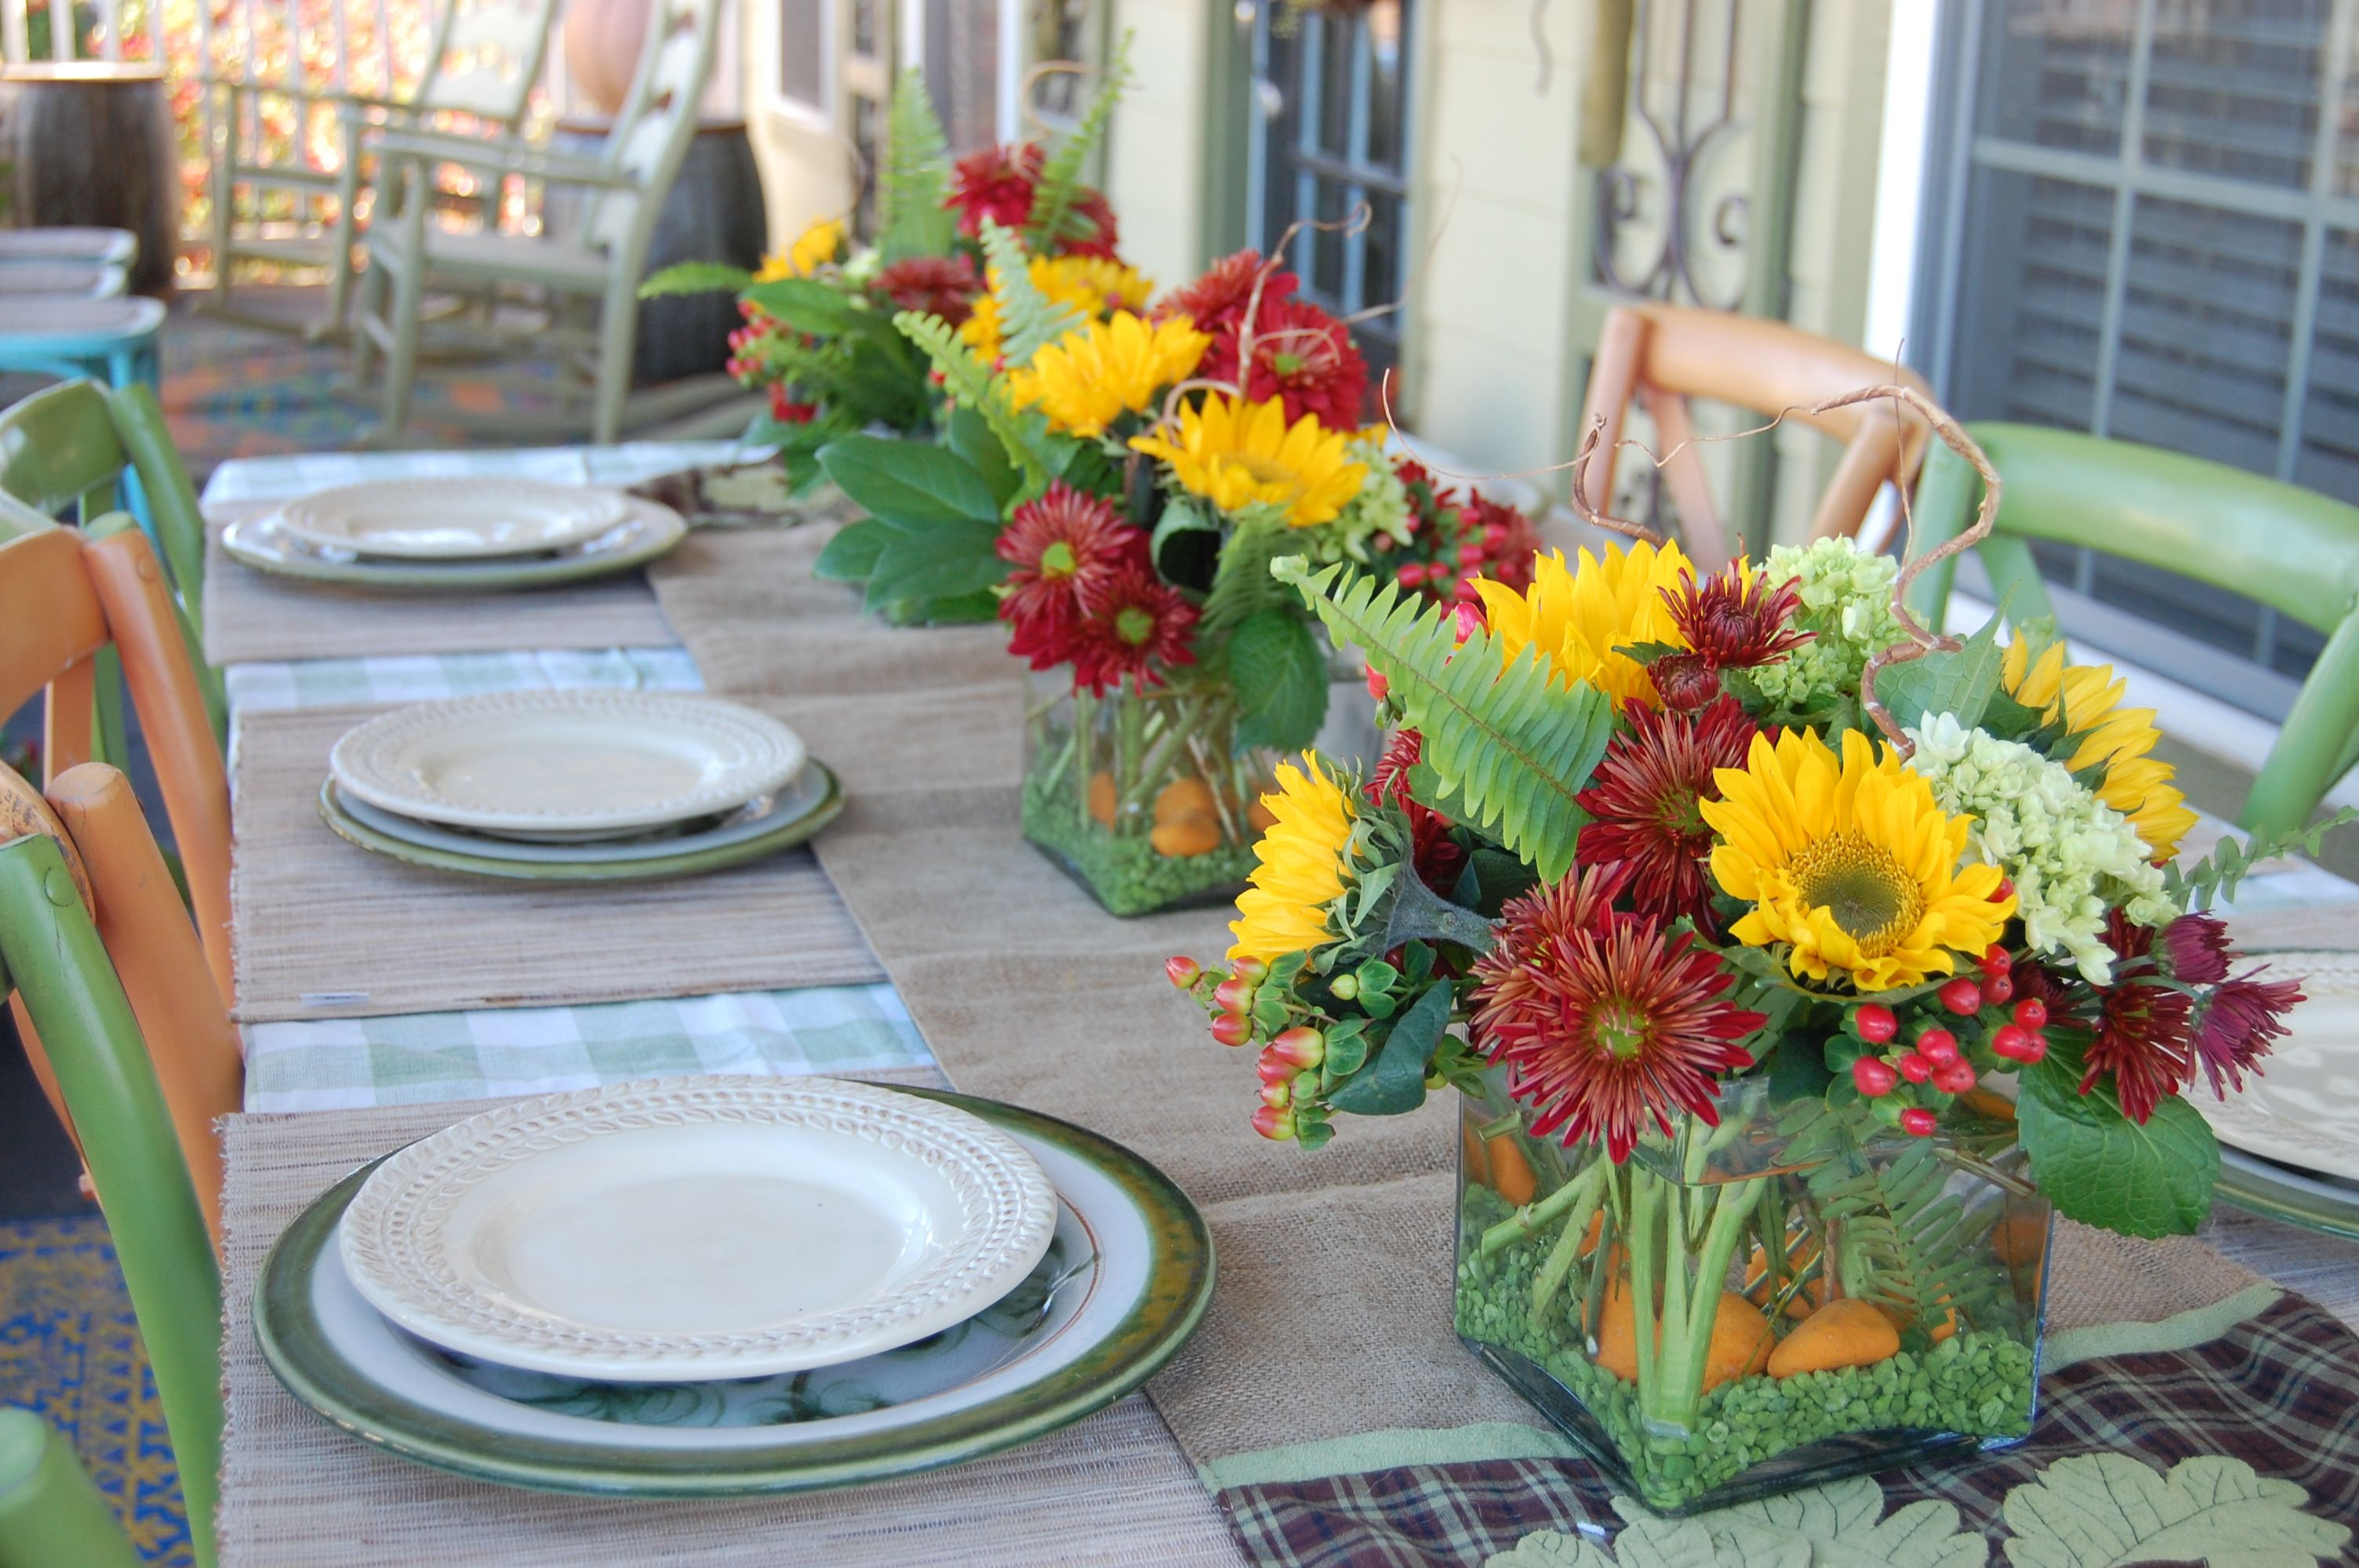 fresh flowers make for the centerpieces on outdoor dining